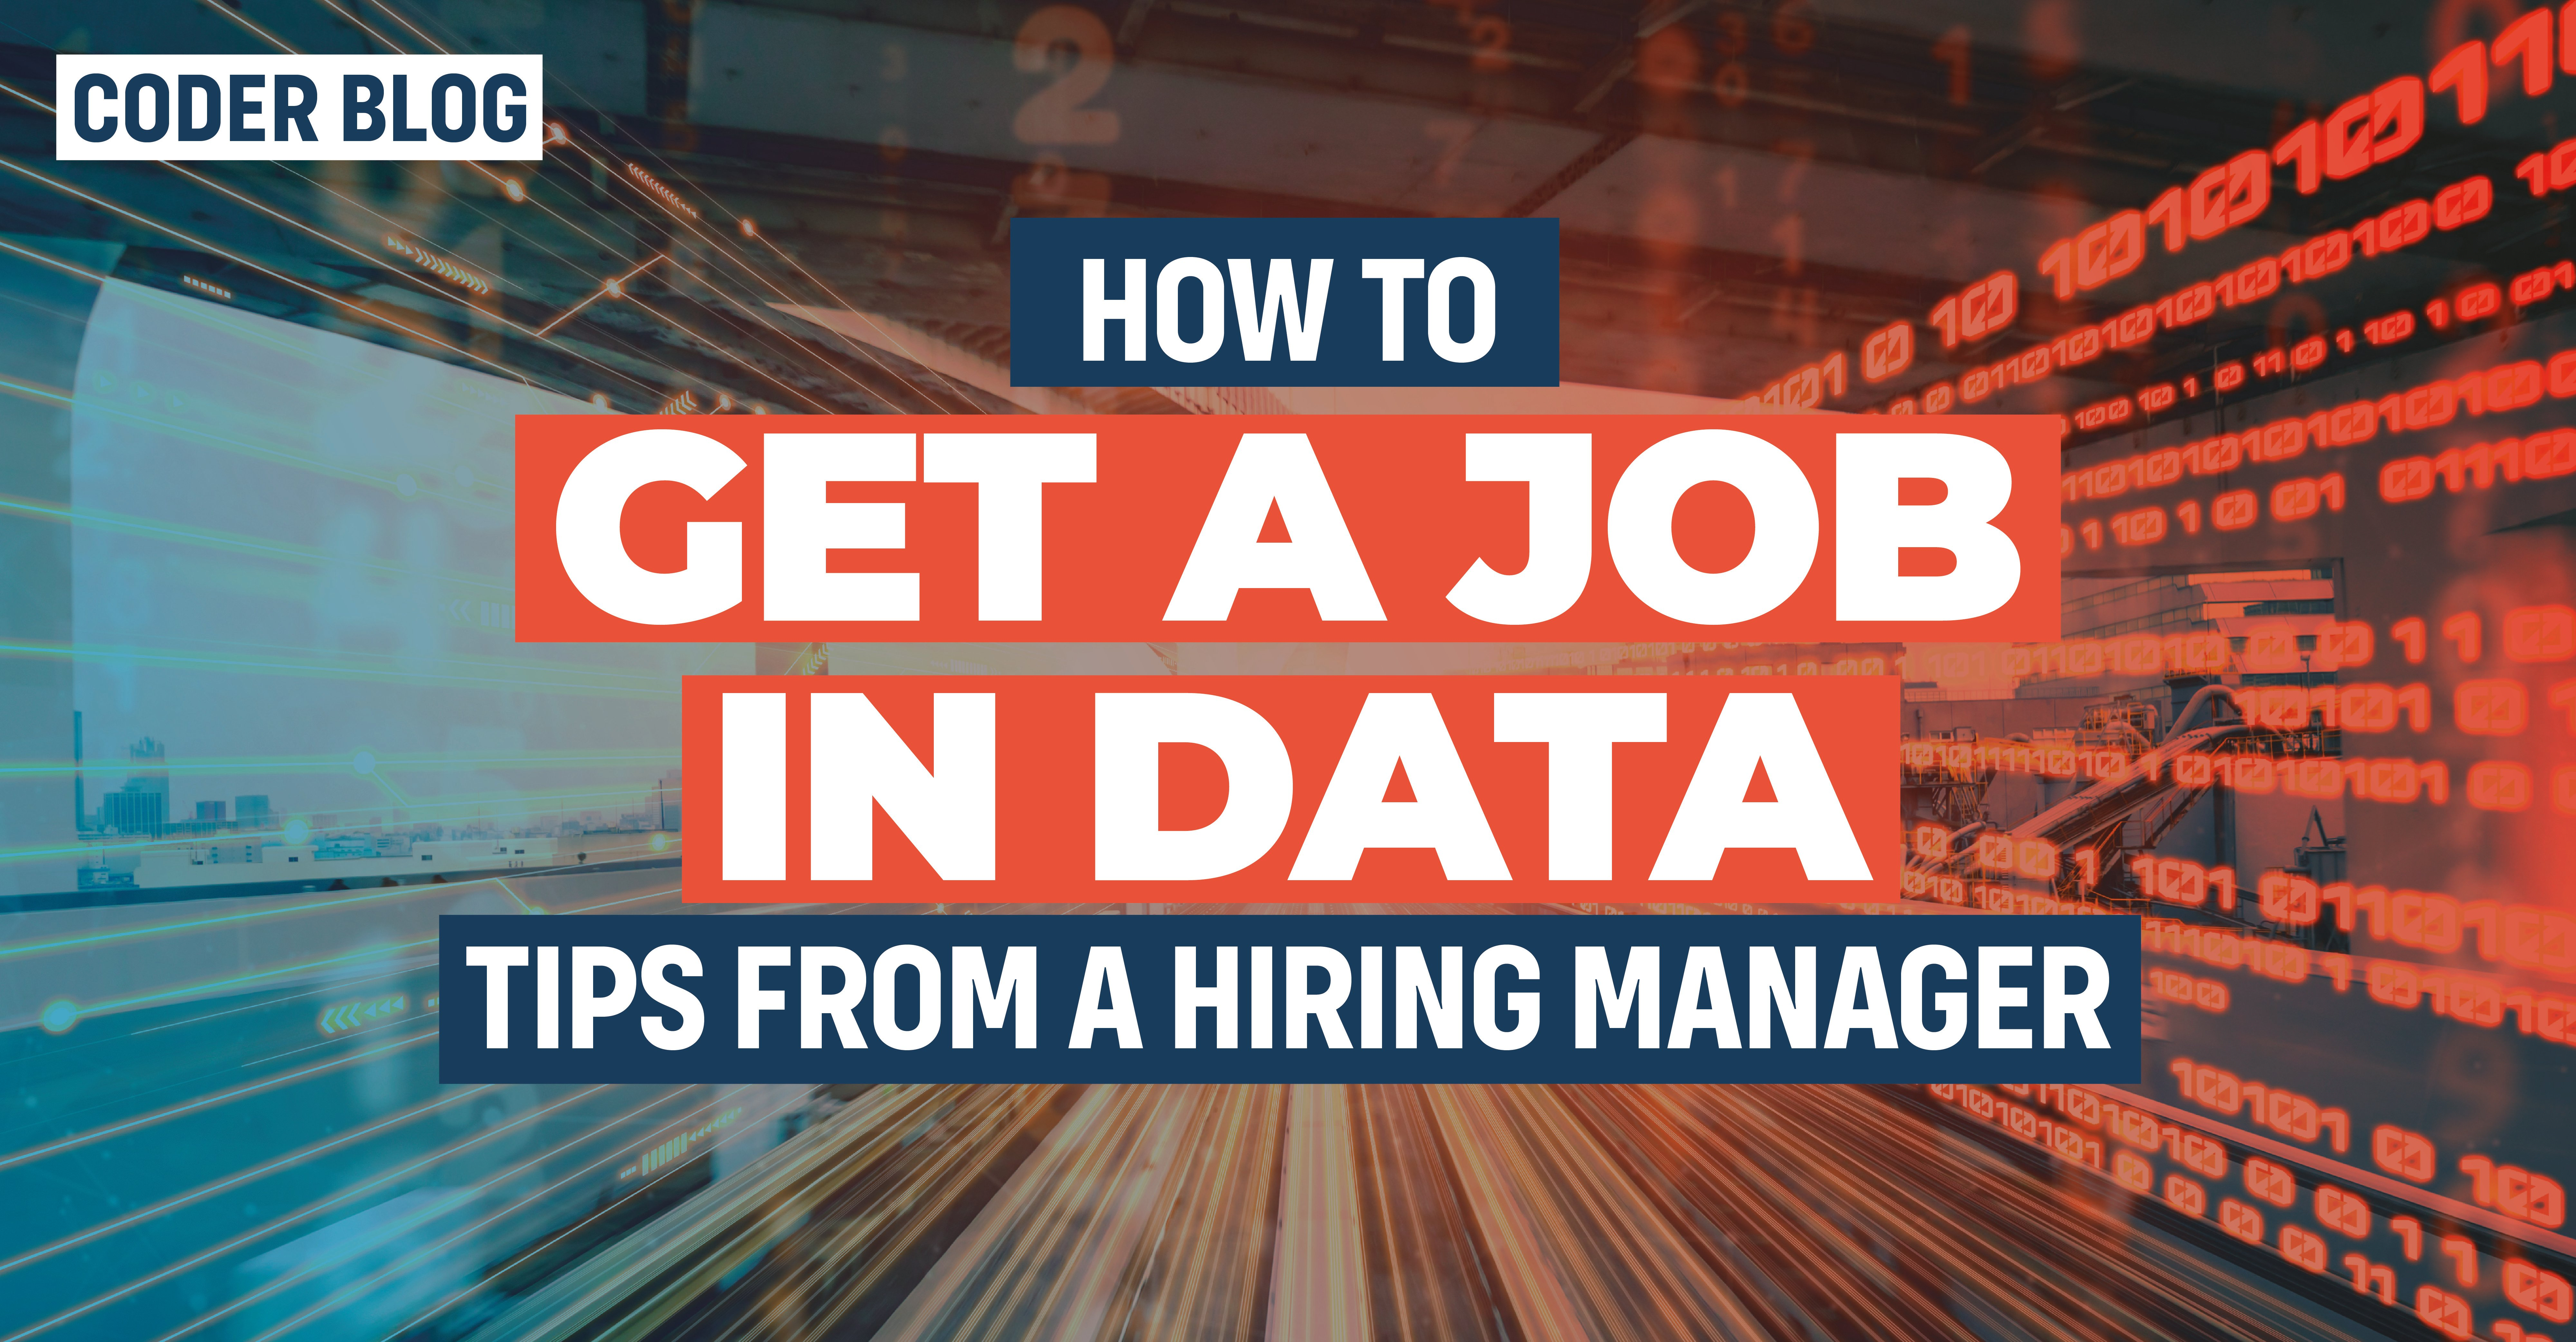 How to Get a Job in Data - Tips from a Hiring Manager